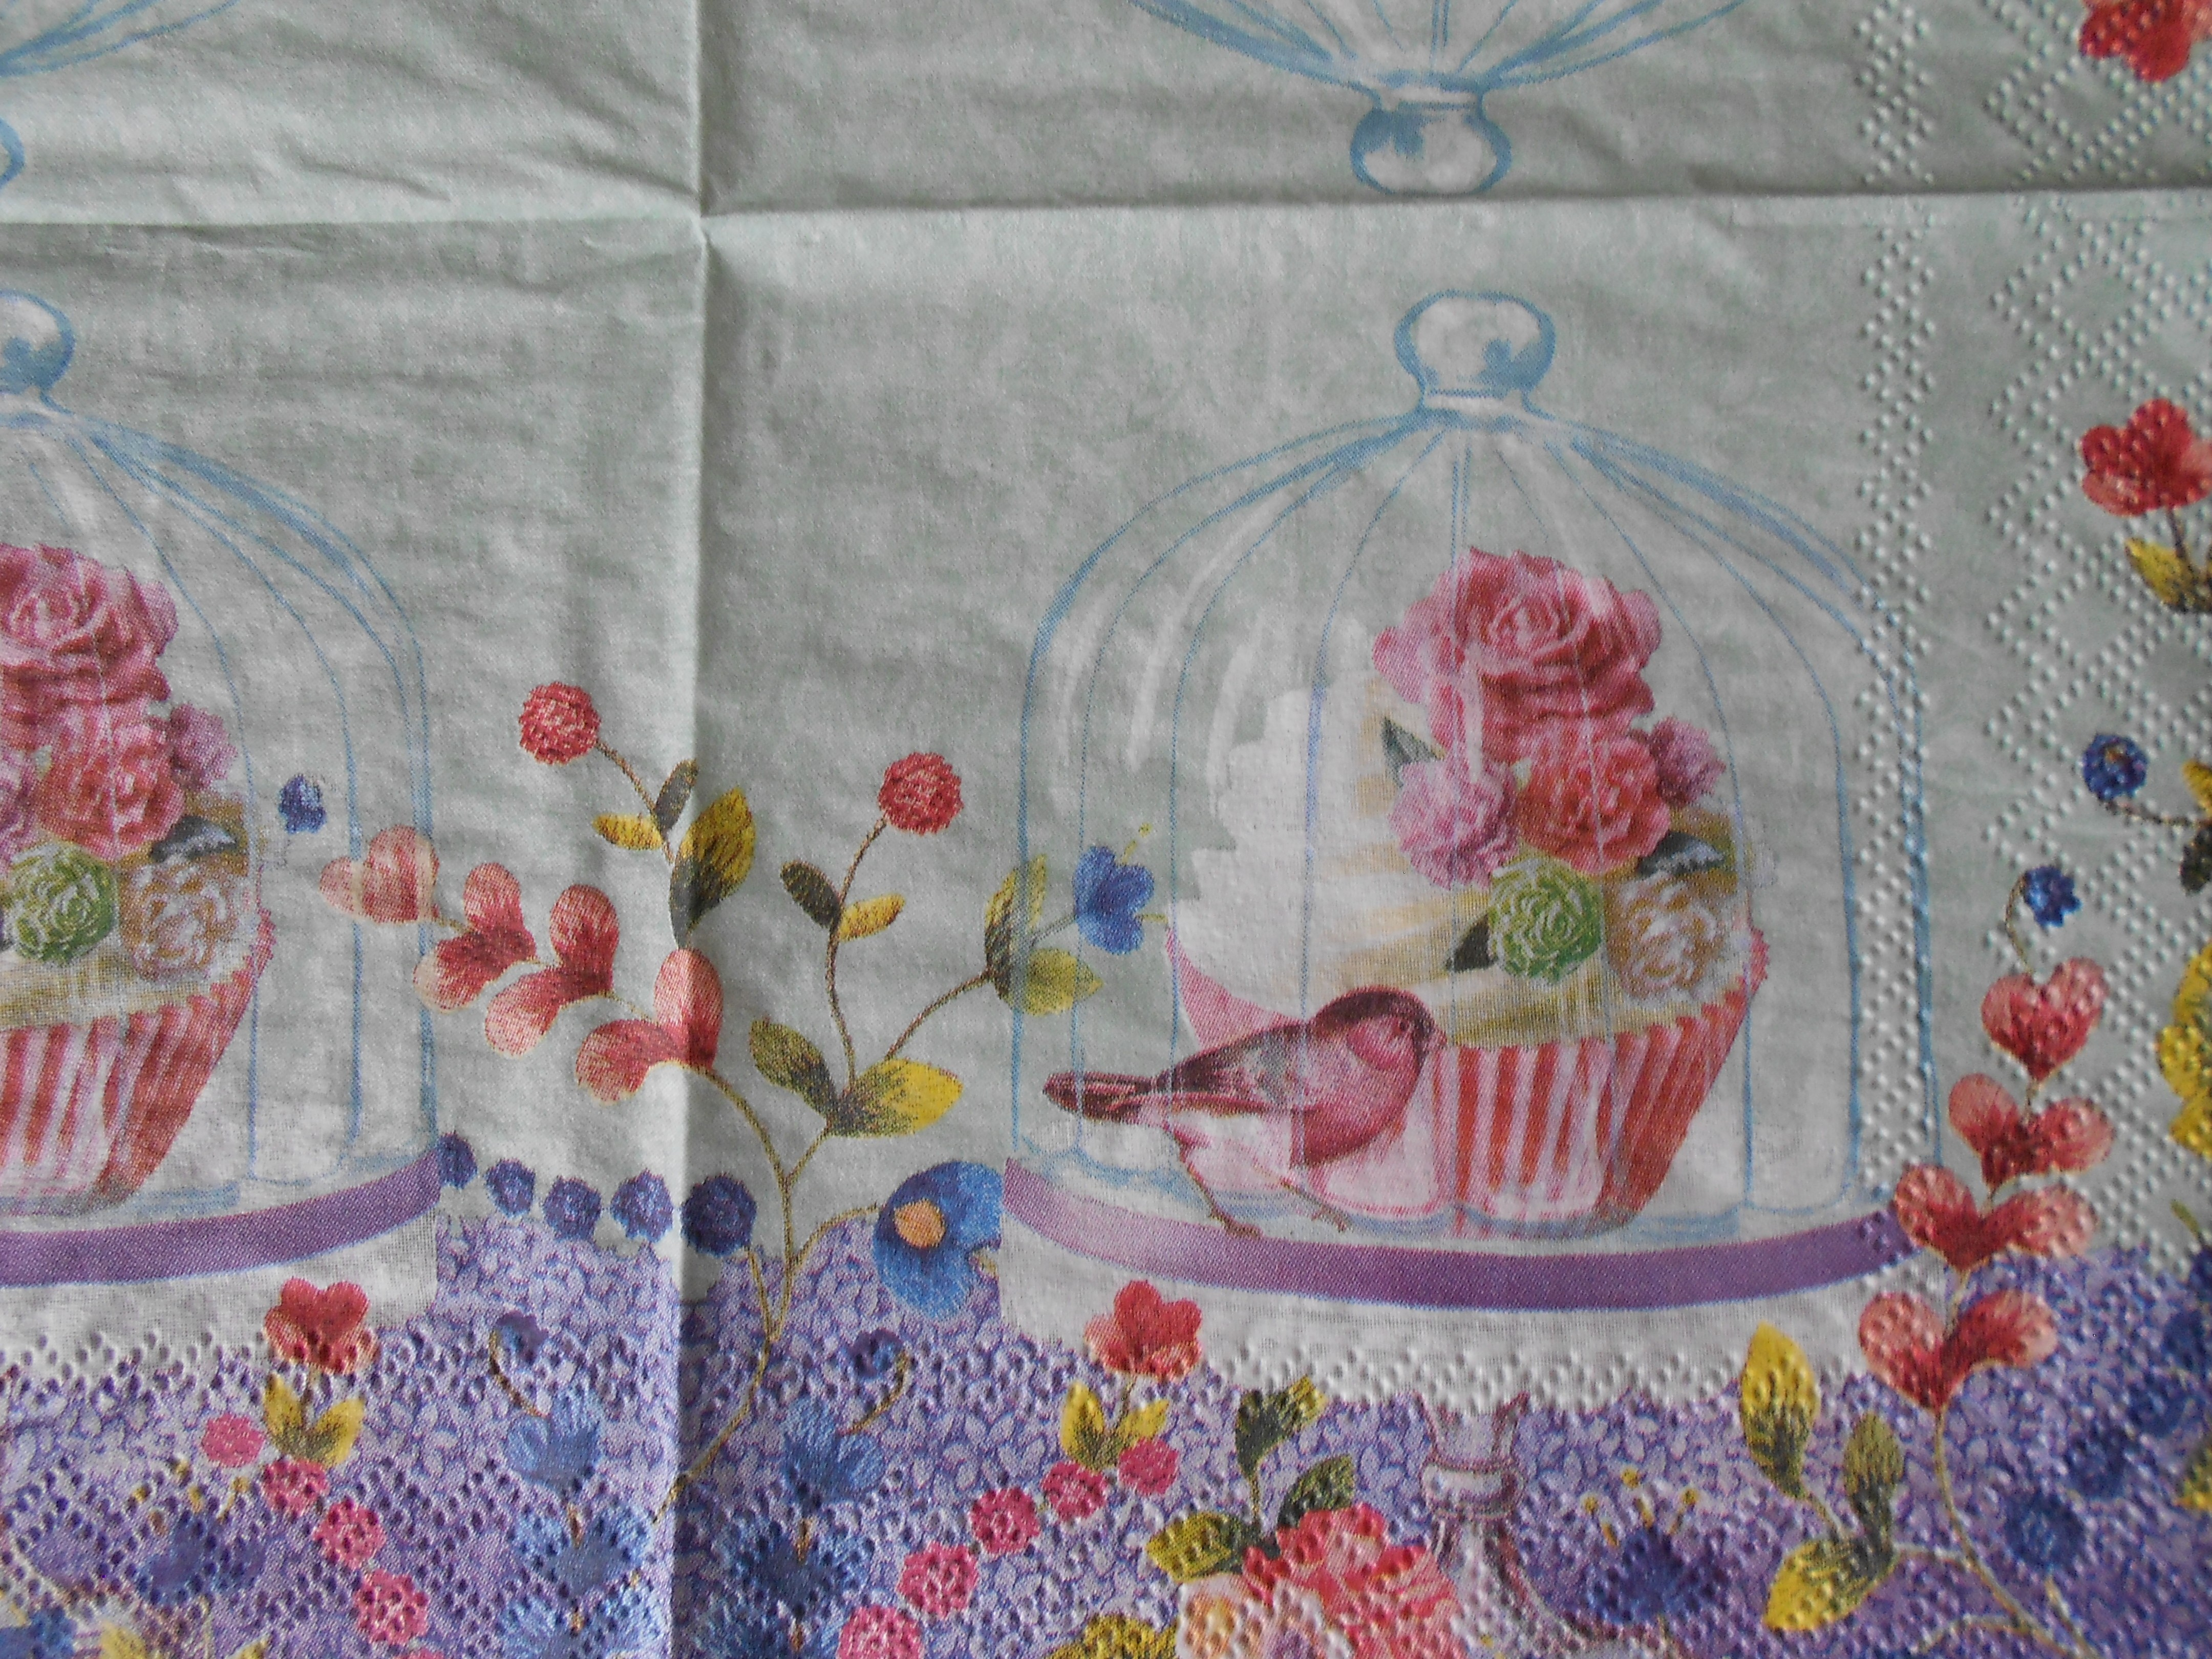 Bird Under Glass Cupcake Decoupage Napkins Decoupage Paper